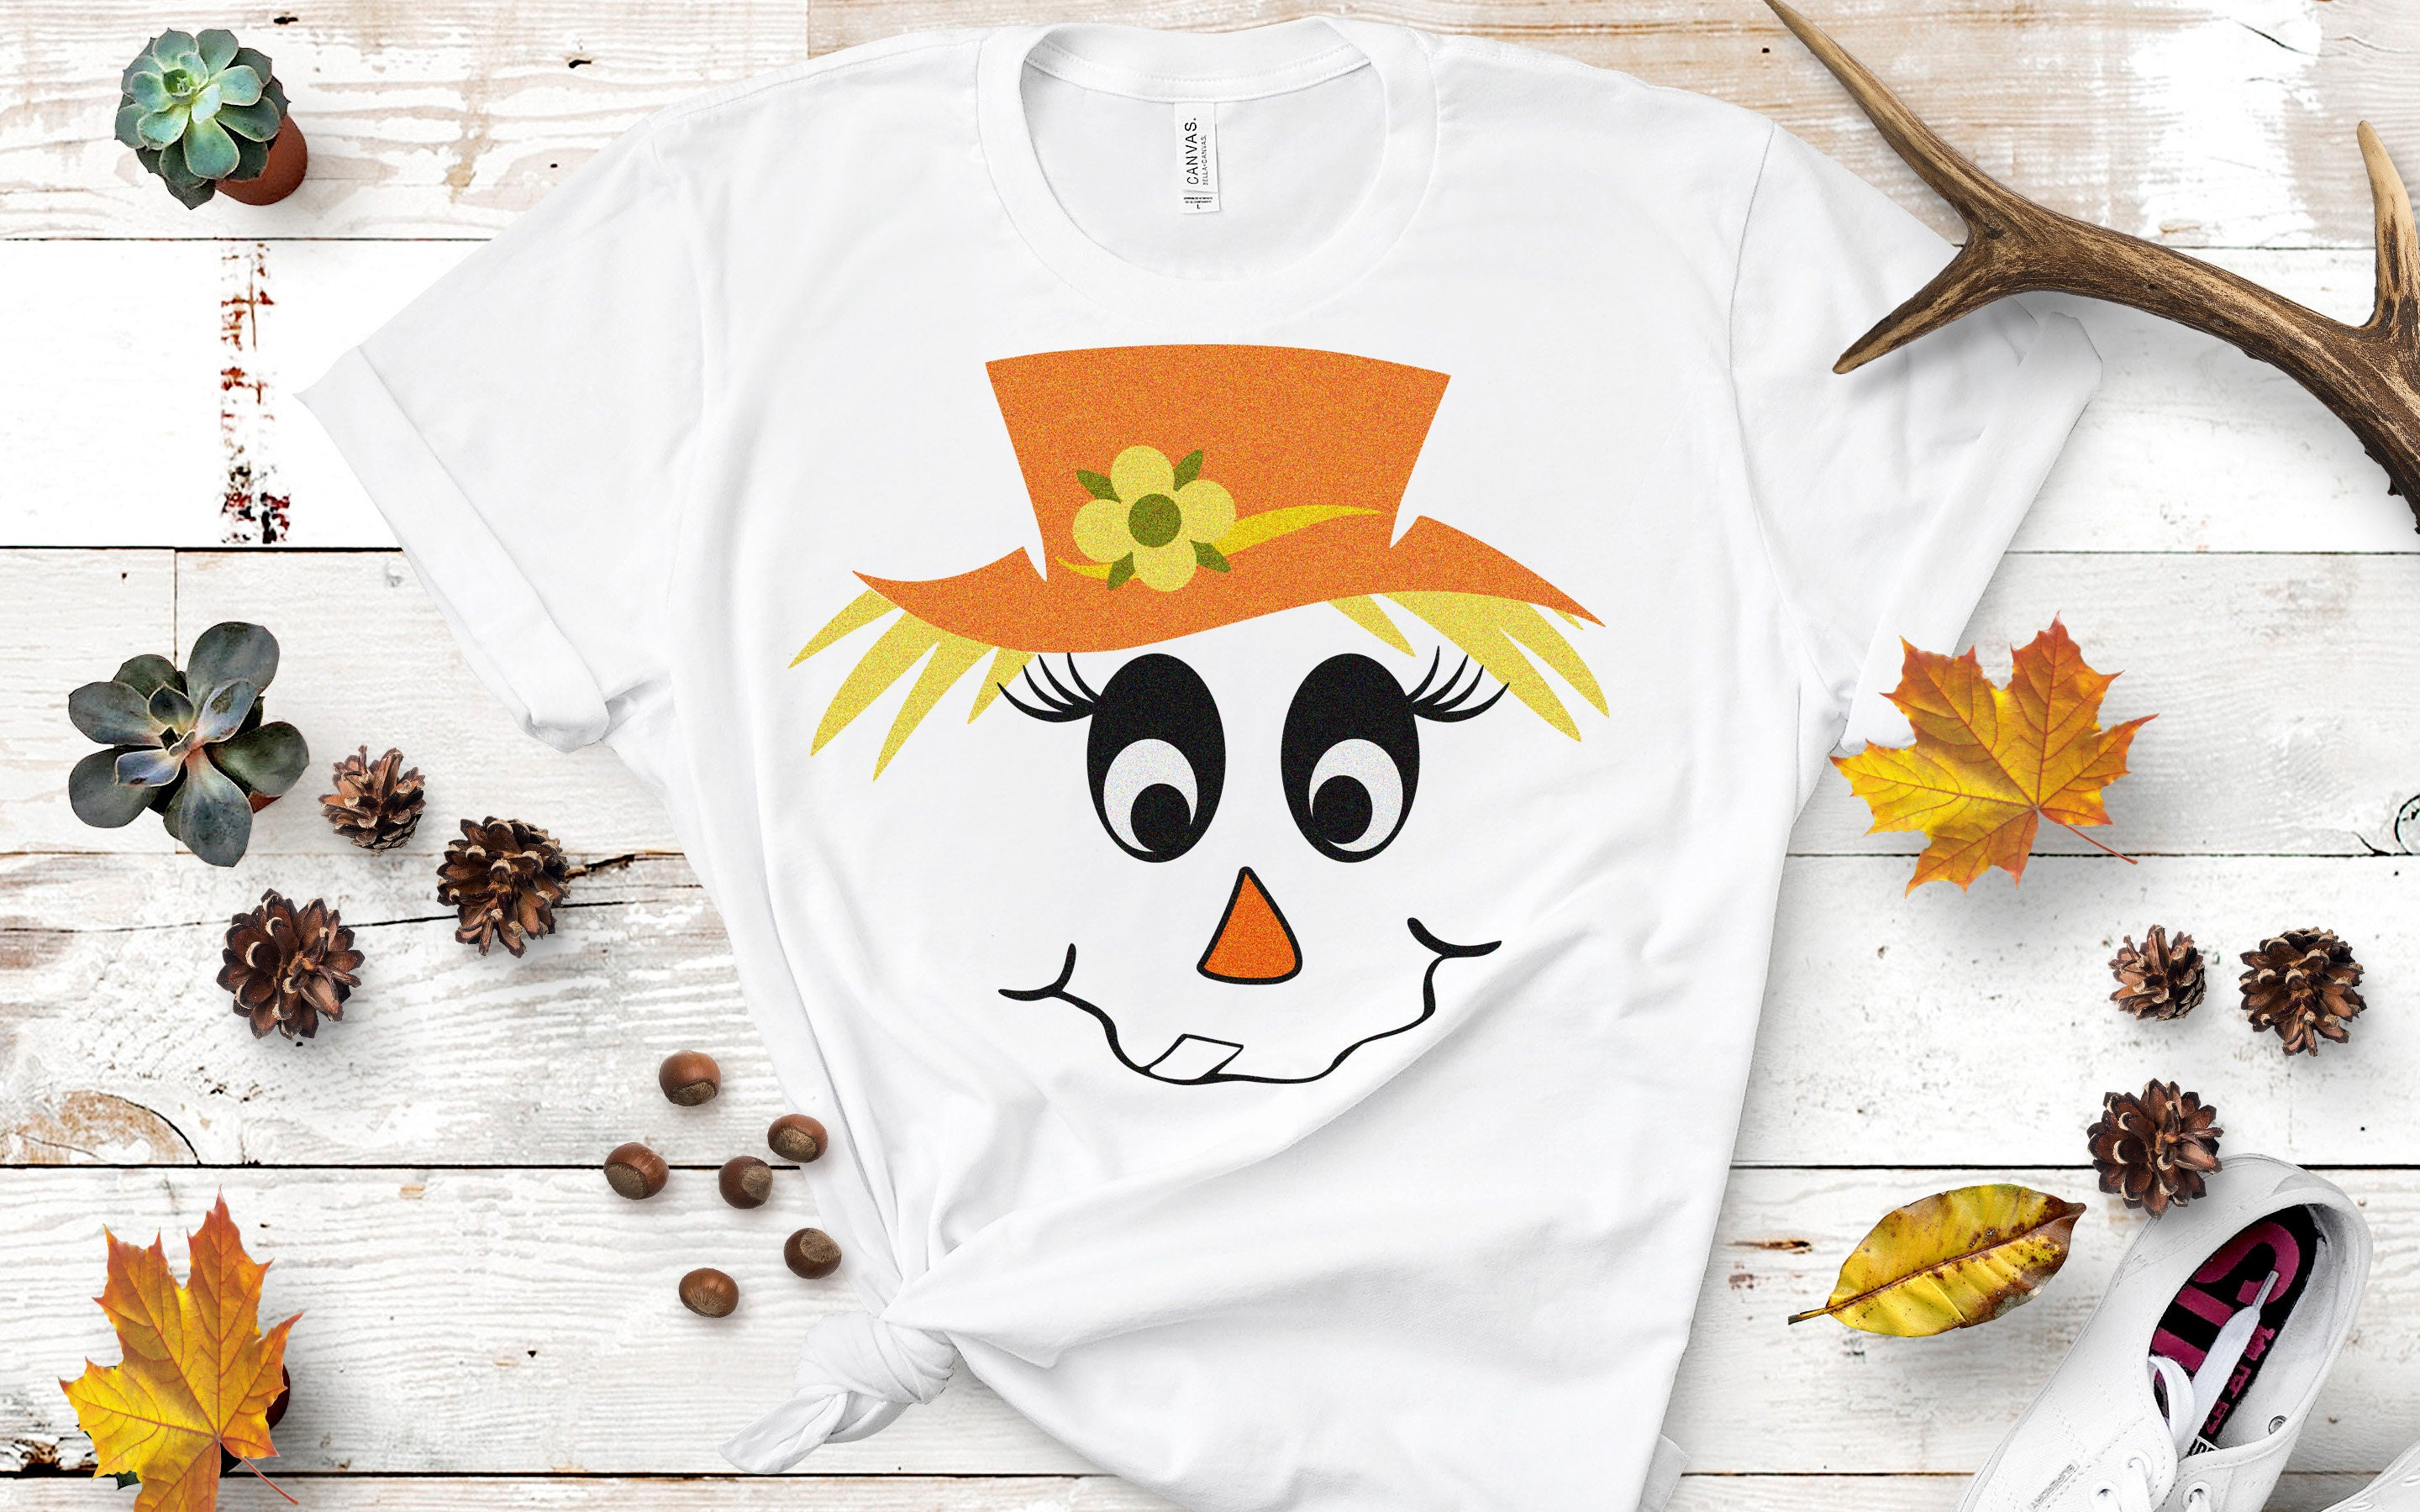 Scarecrow Svg Scarecrow Face Svg Lady And Man Face Svg Boy Girl Thanksgiving Svg Fall Autumn Halloween Svg Digital Cut File Dxf Eps Png